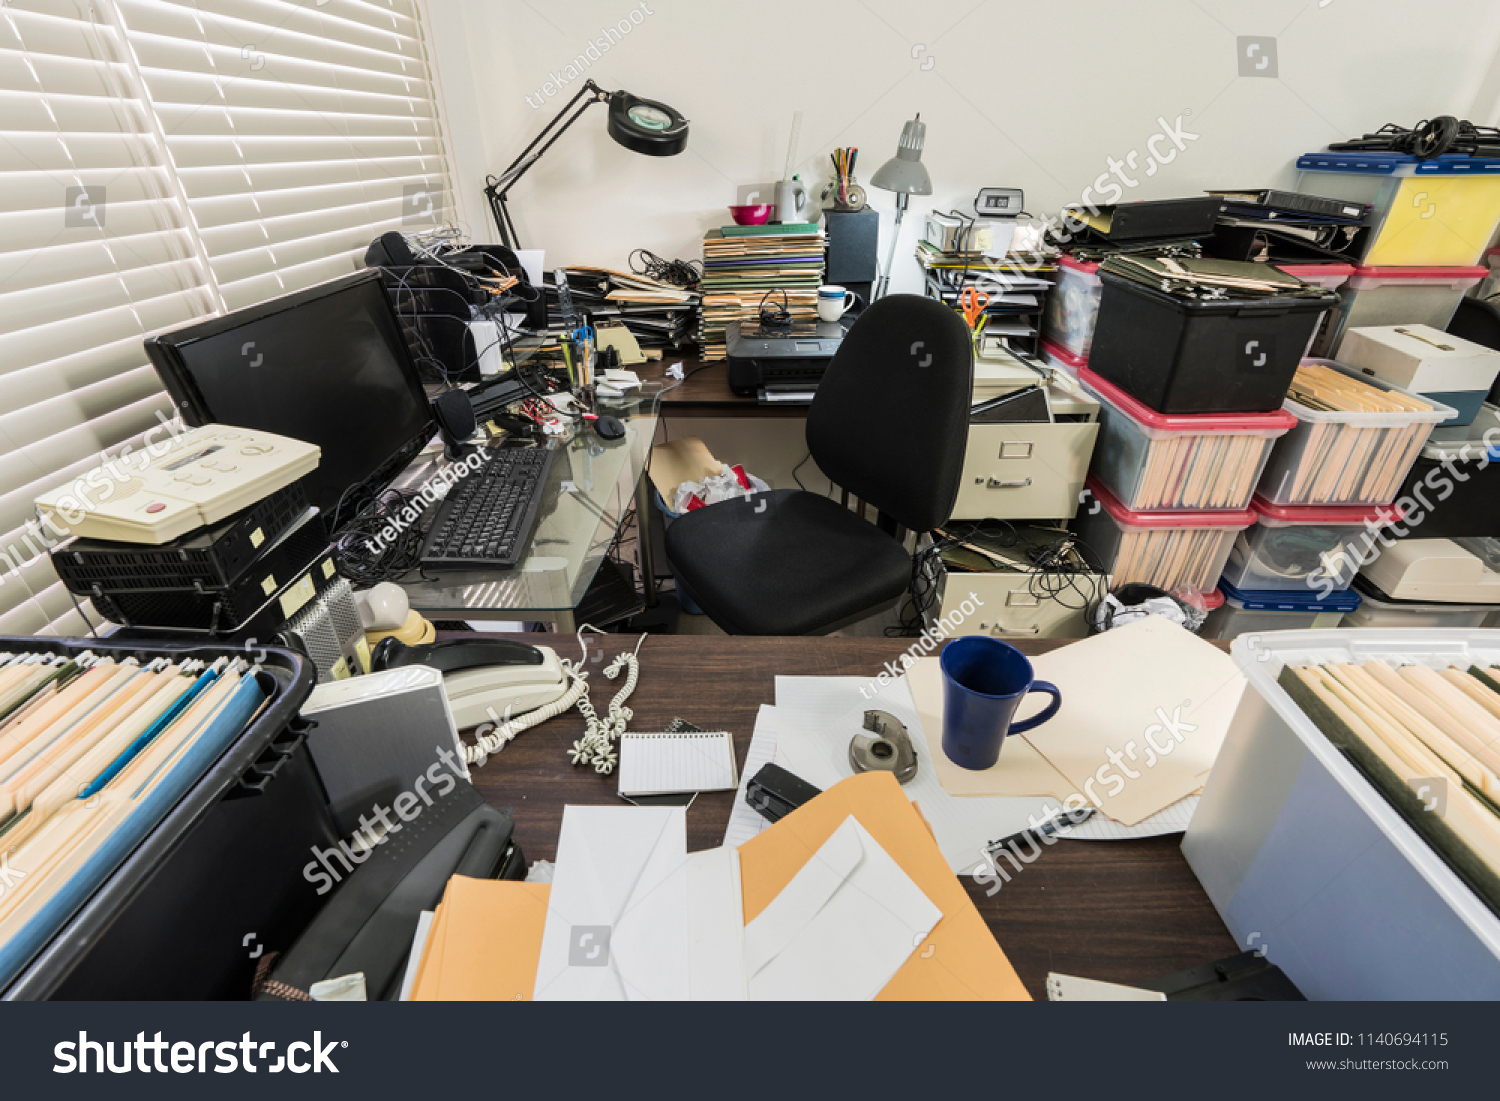 Messy business office with piles of files and disorganized clutter. #1140694115